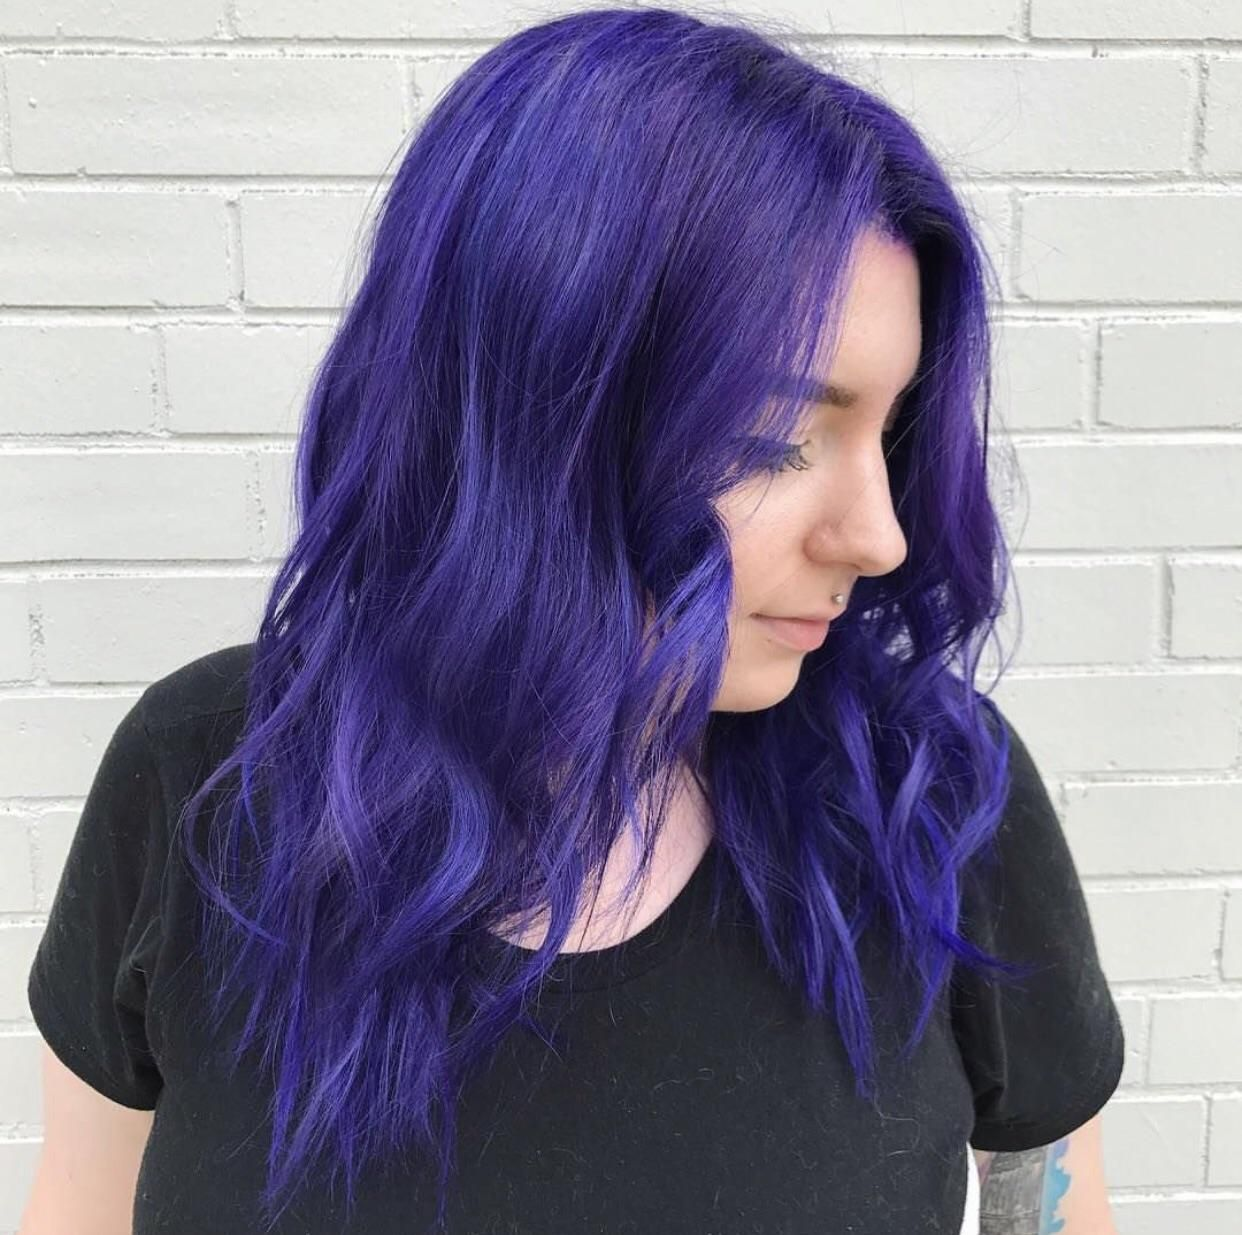 i've had different shades of purple hair for years but this one is